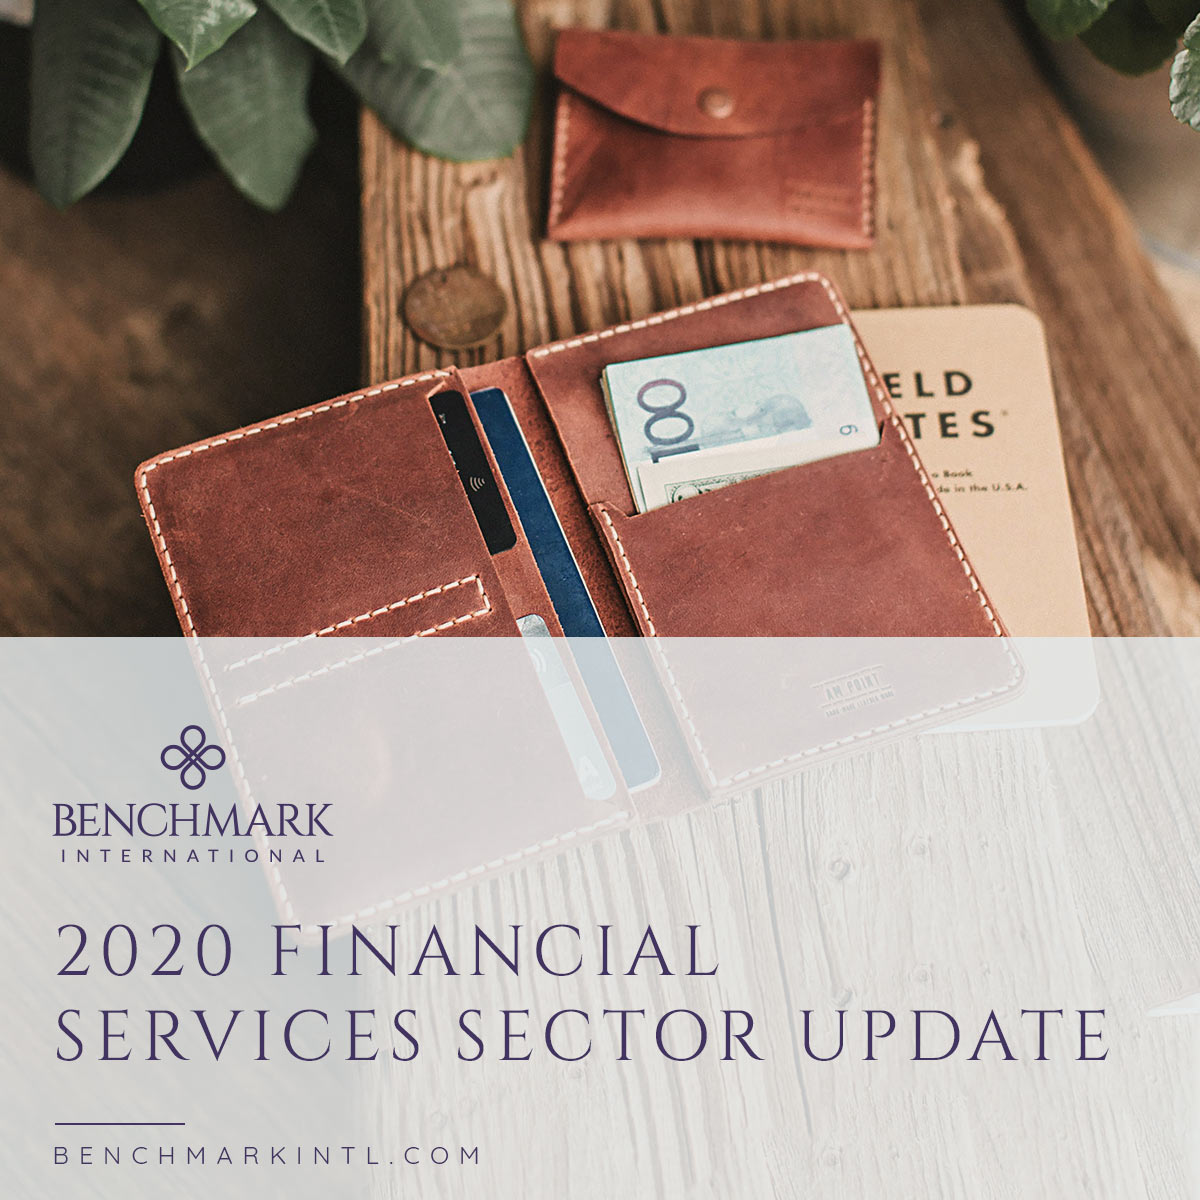 2020_Financial_Services_Sector_Update_Social